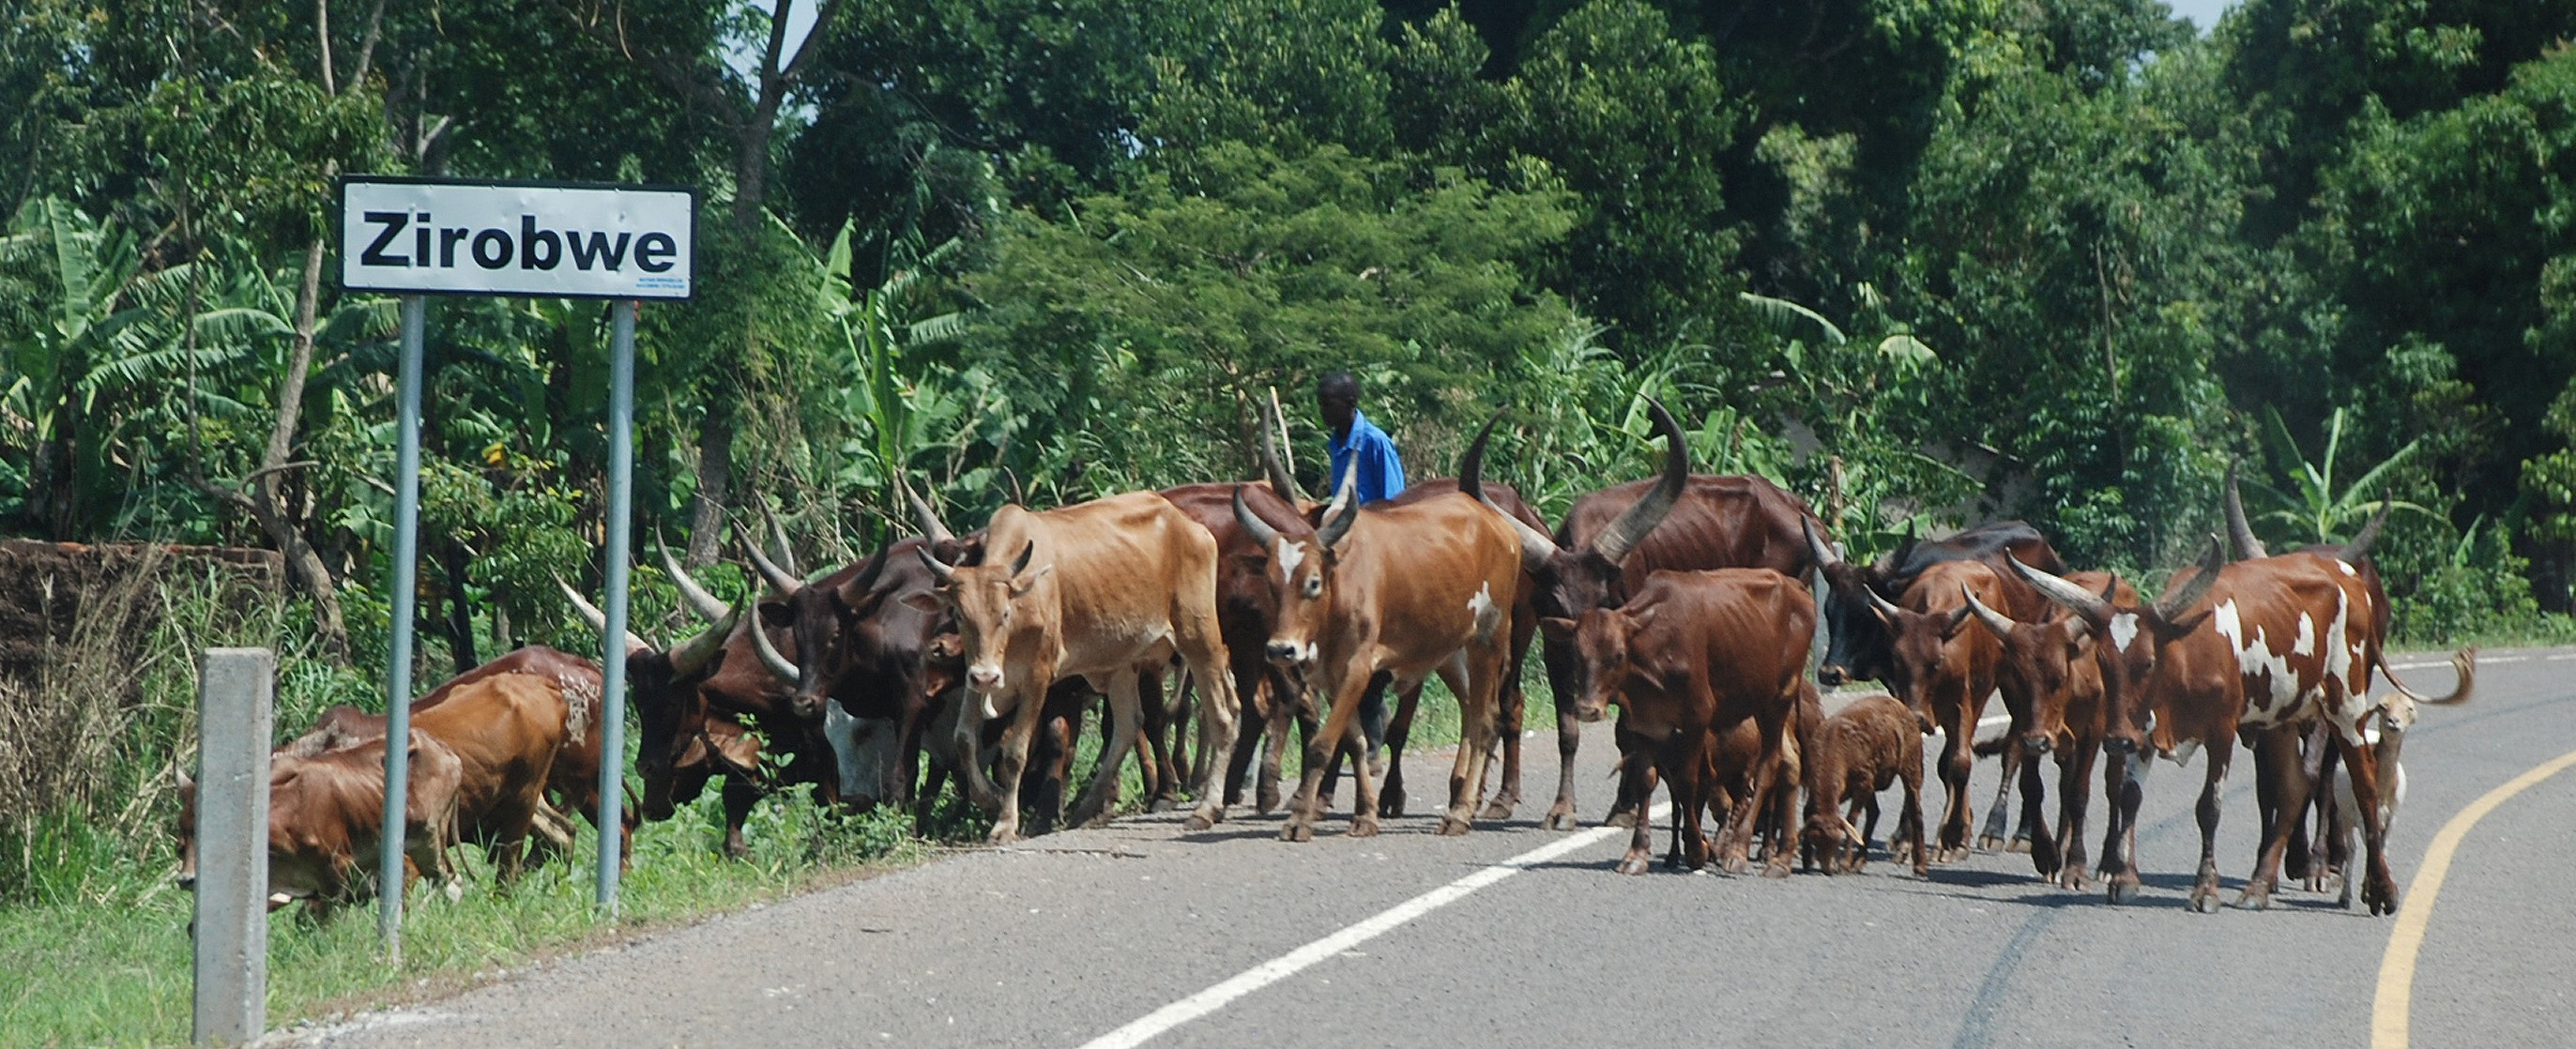 Cattle on the road in Luwero